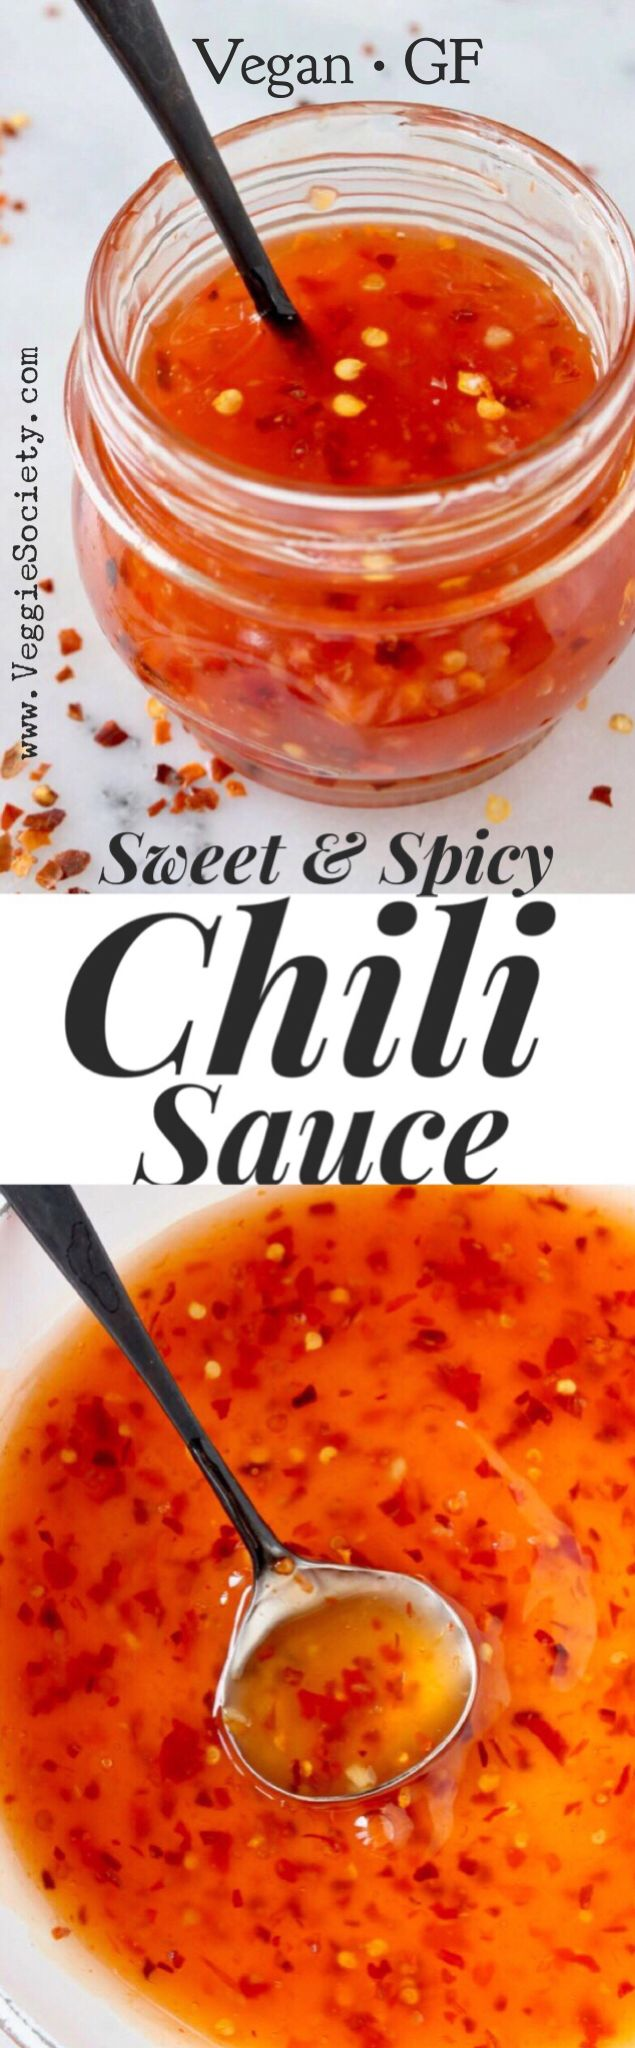 Vegan Sweet and Spicy Chili Sauce Recipe from Scratch with Garlic and Tapioca | VeggieSociety.com @VeggieSociety #1 #vegan #sauce #veganrecipes